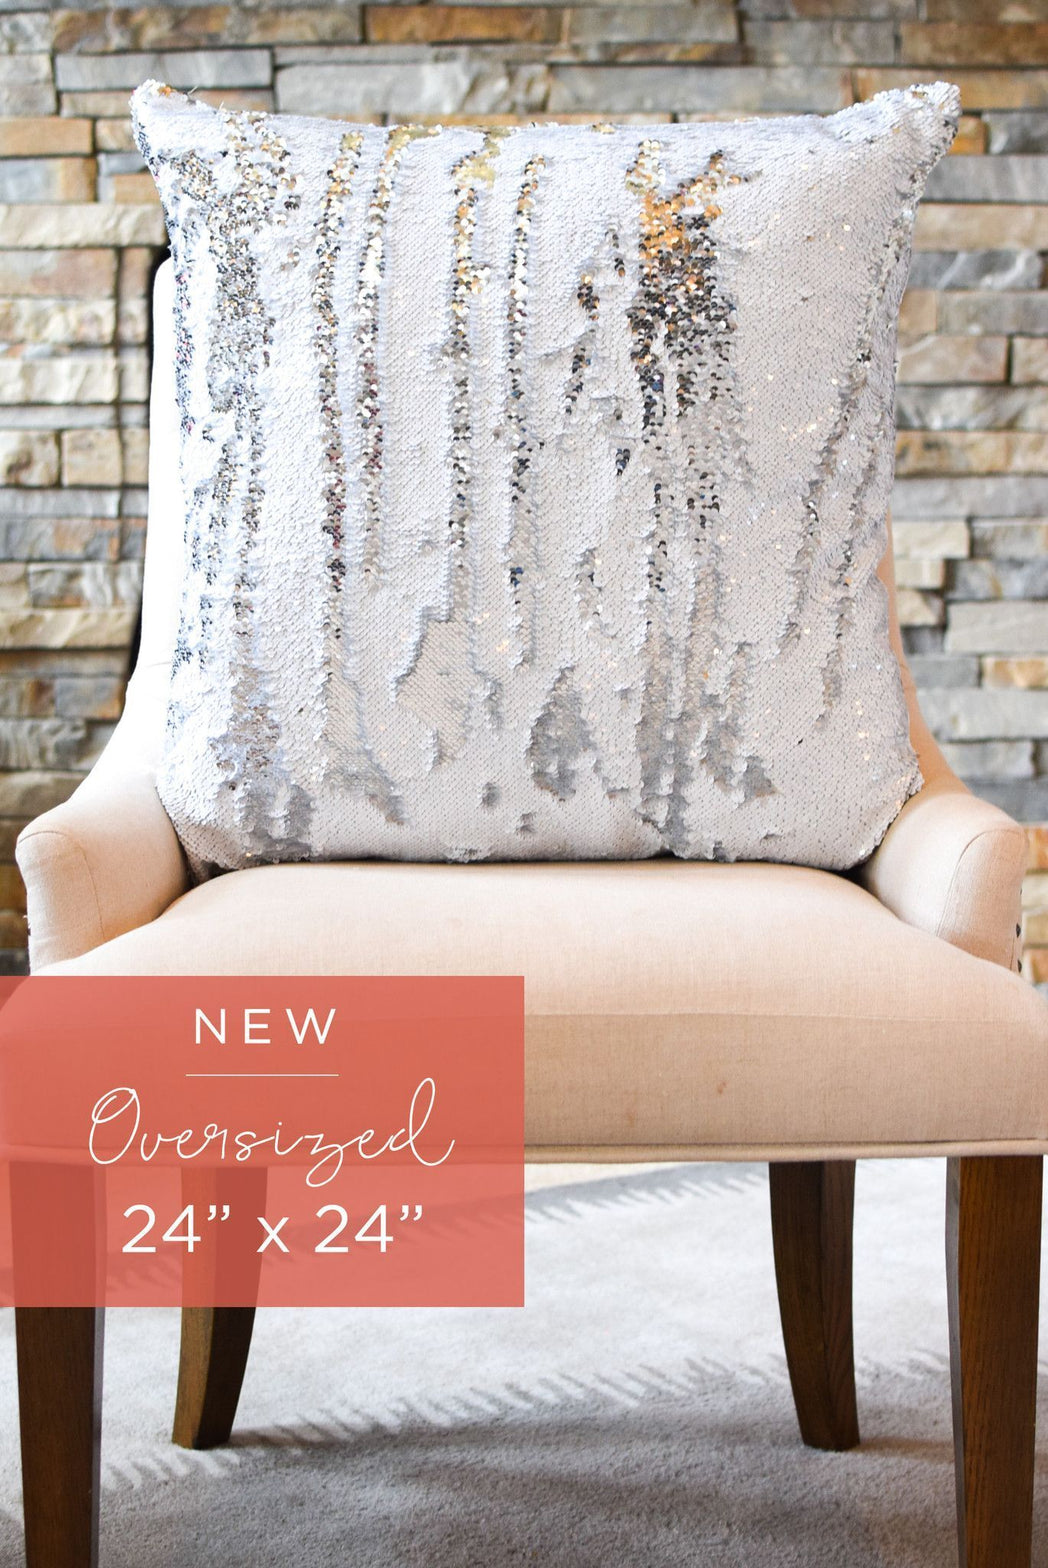 Oversized 24 x 24 White Rice & Silver Sequin Mermaid Pillow COVER ONLY